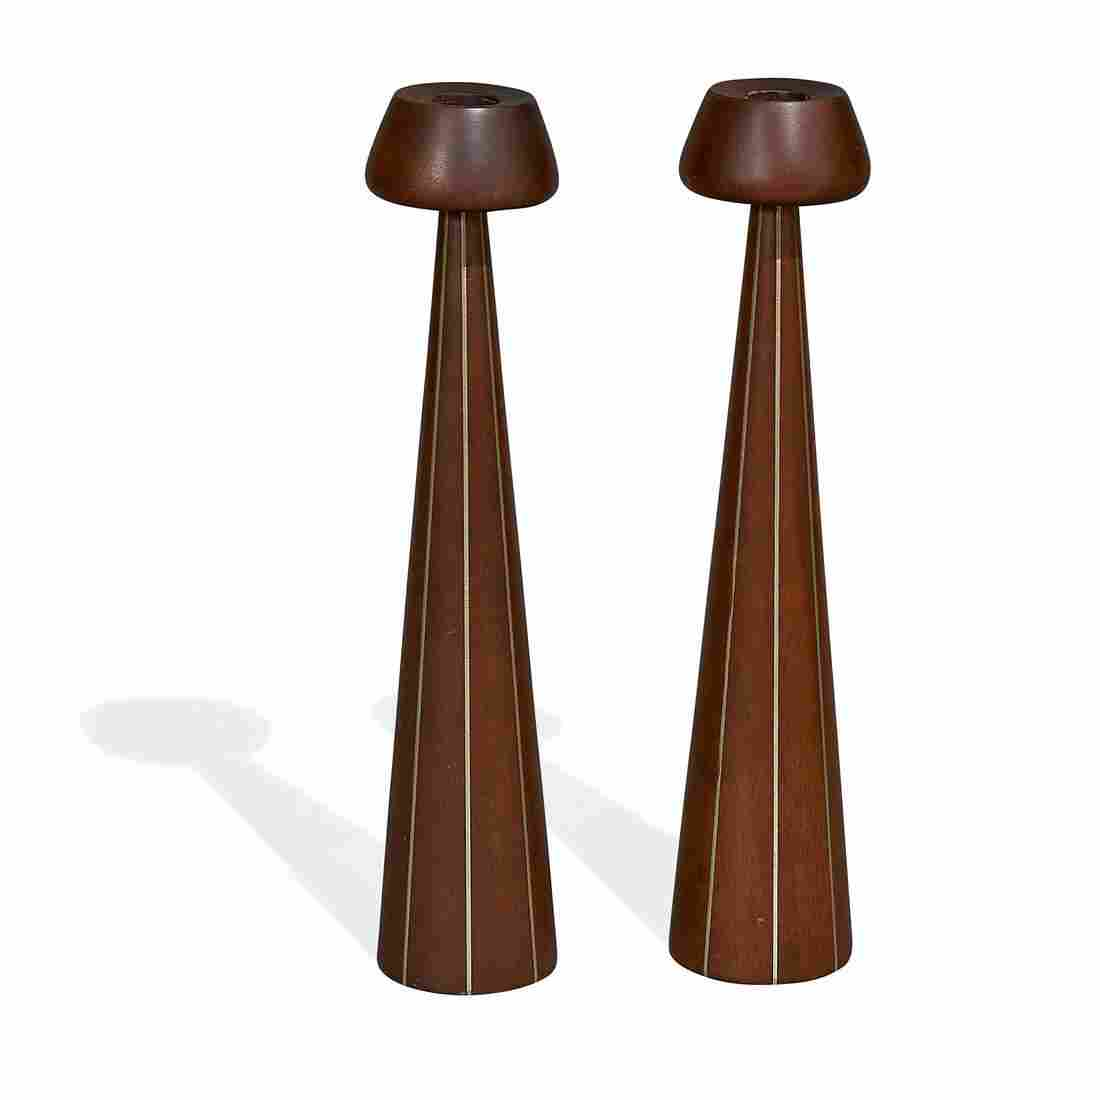 Paul Evans / Phillip Lloyd Powell candlesticks